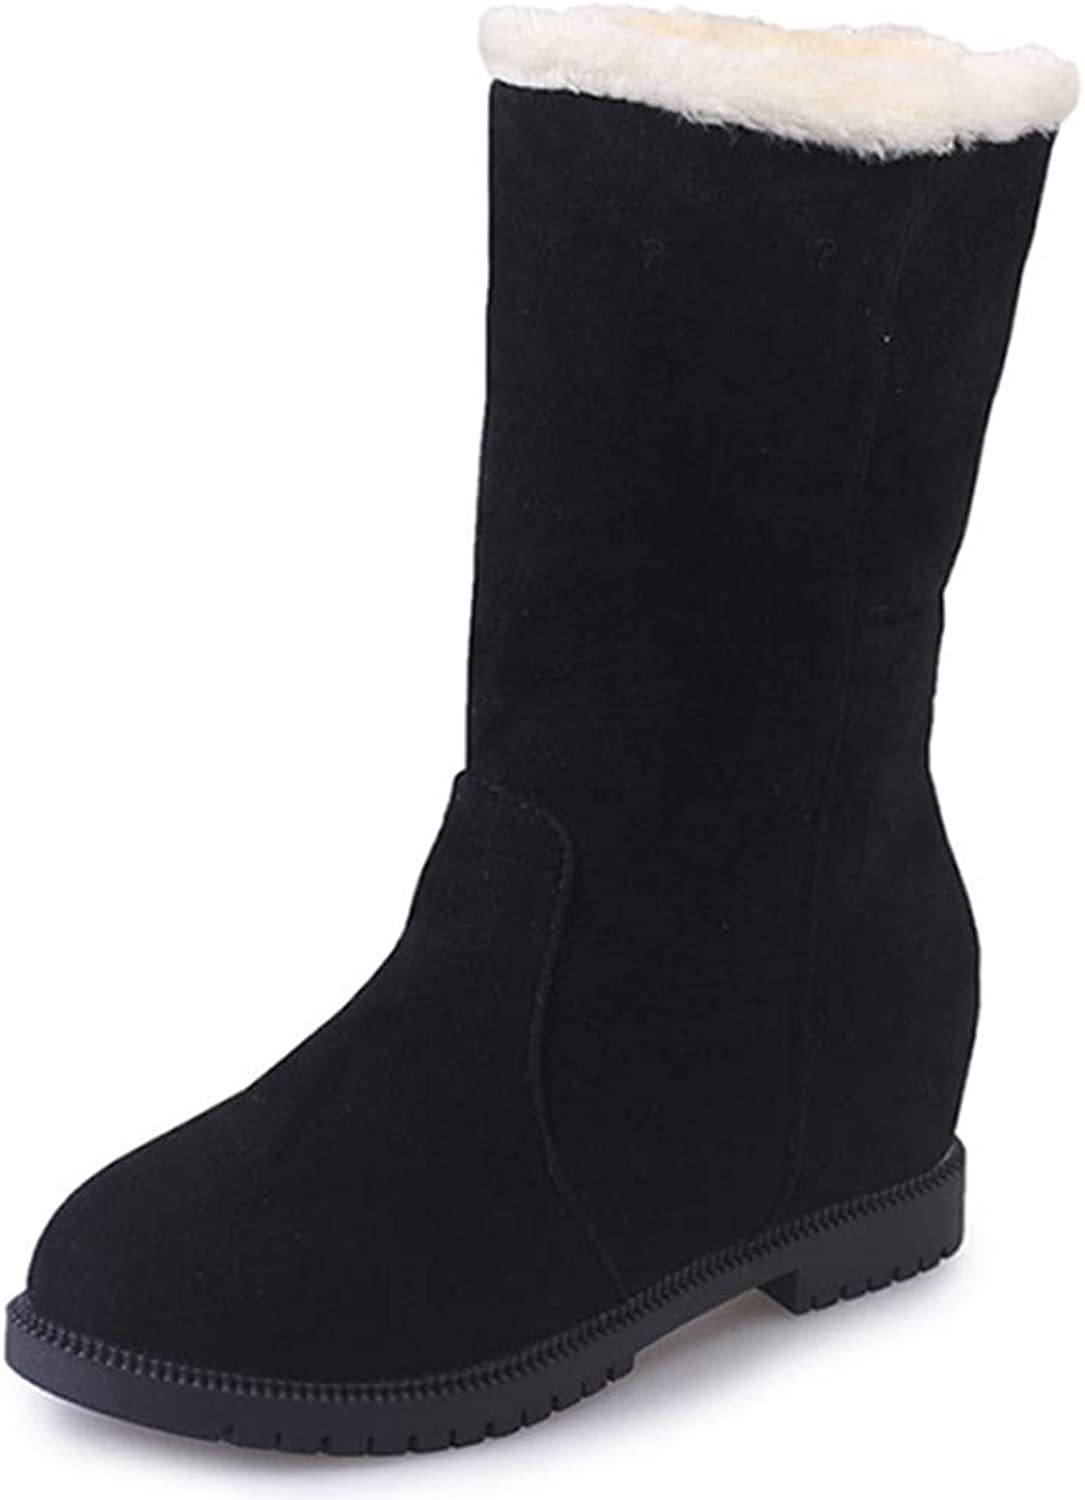 Fay Waters Women's Fur Down Cute Warm Ankle Boots Plush Anti Slip Round Toe Winter Snow Booties